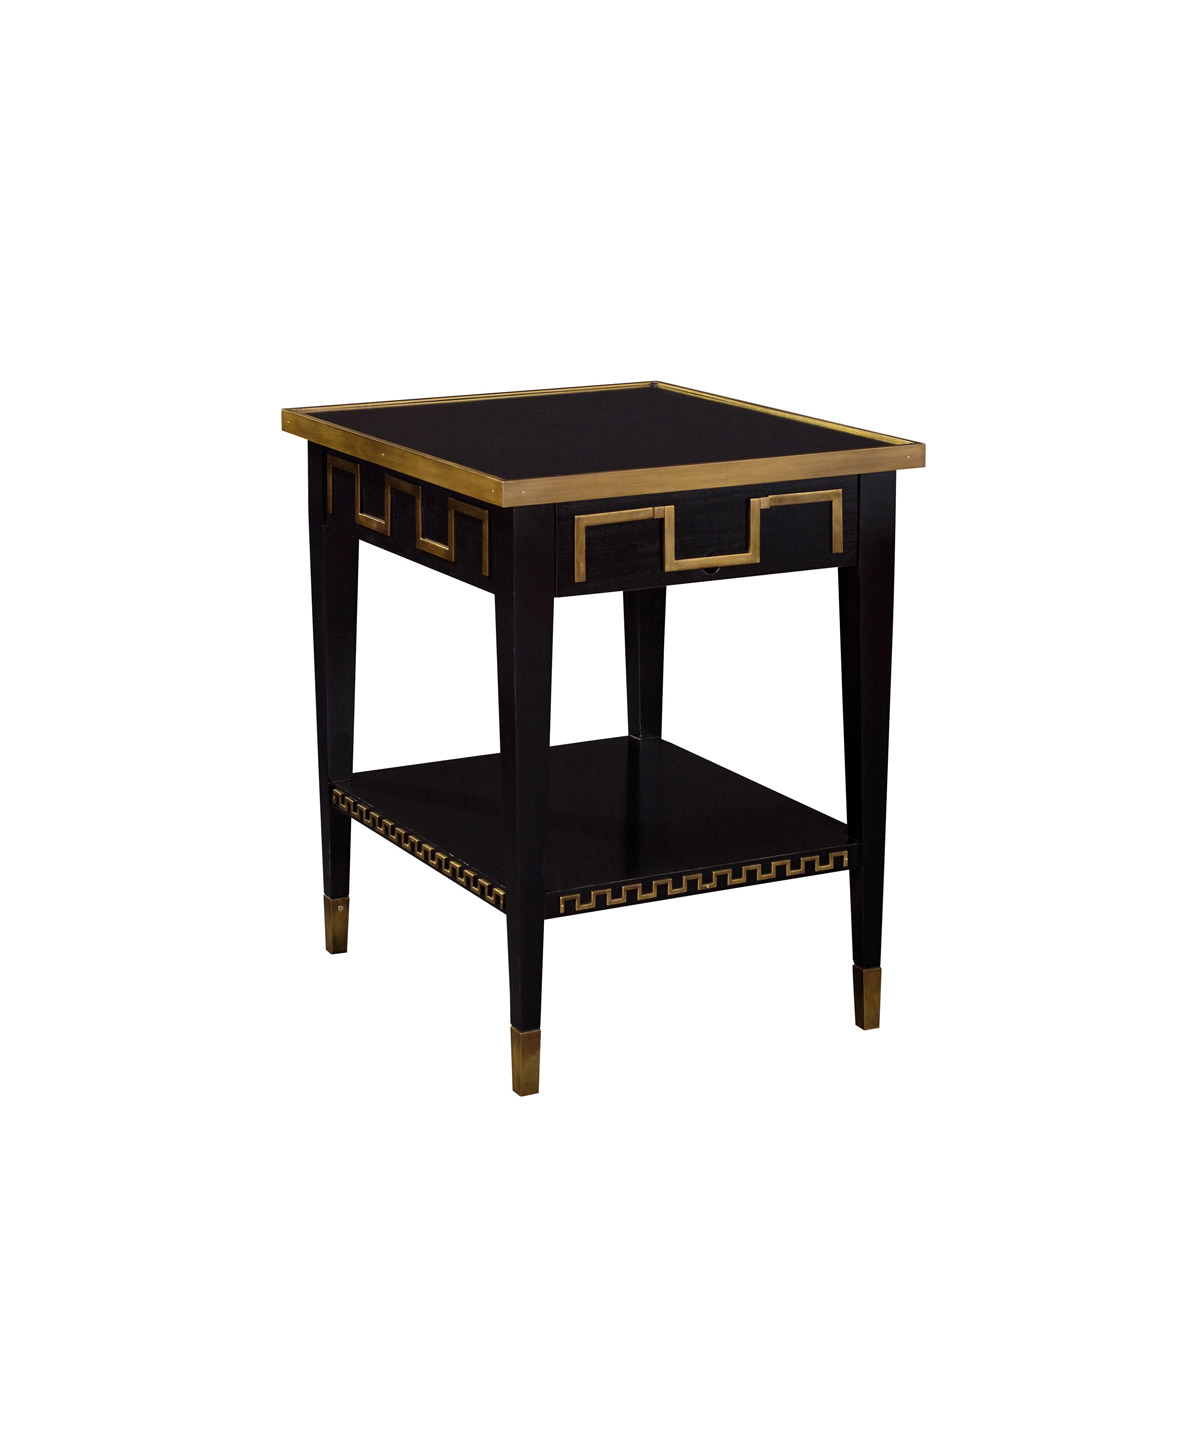 Adams Greek Key Side Table